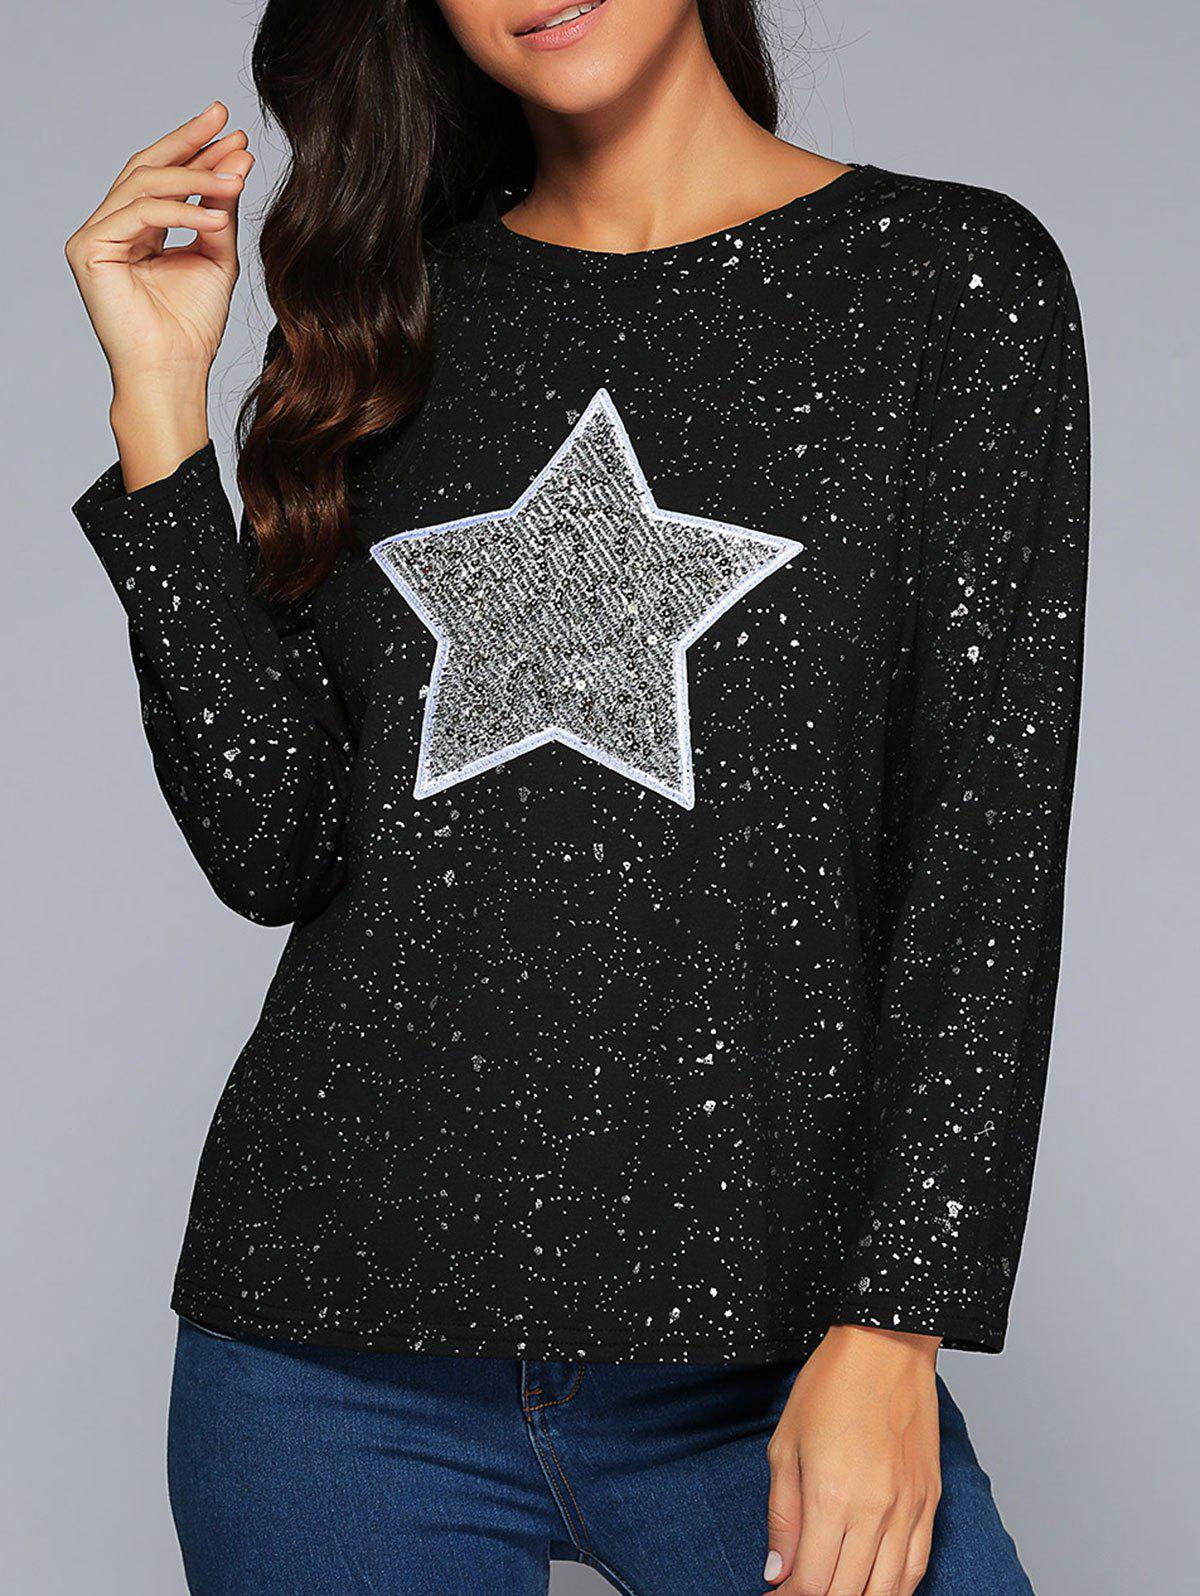 Star Sequins Long Sleeve Sparkly T-Shirt - BLACK 4XL